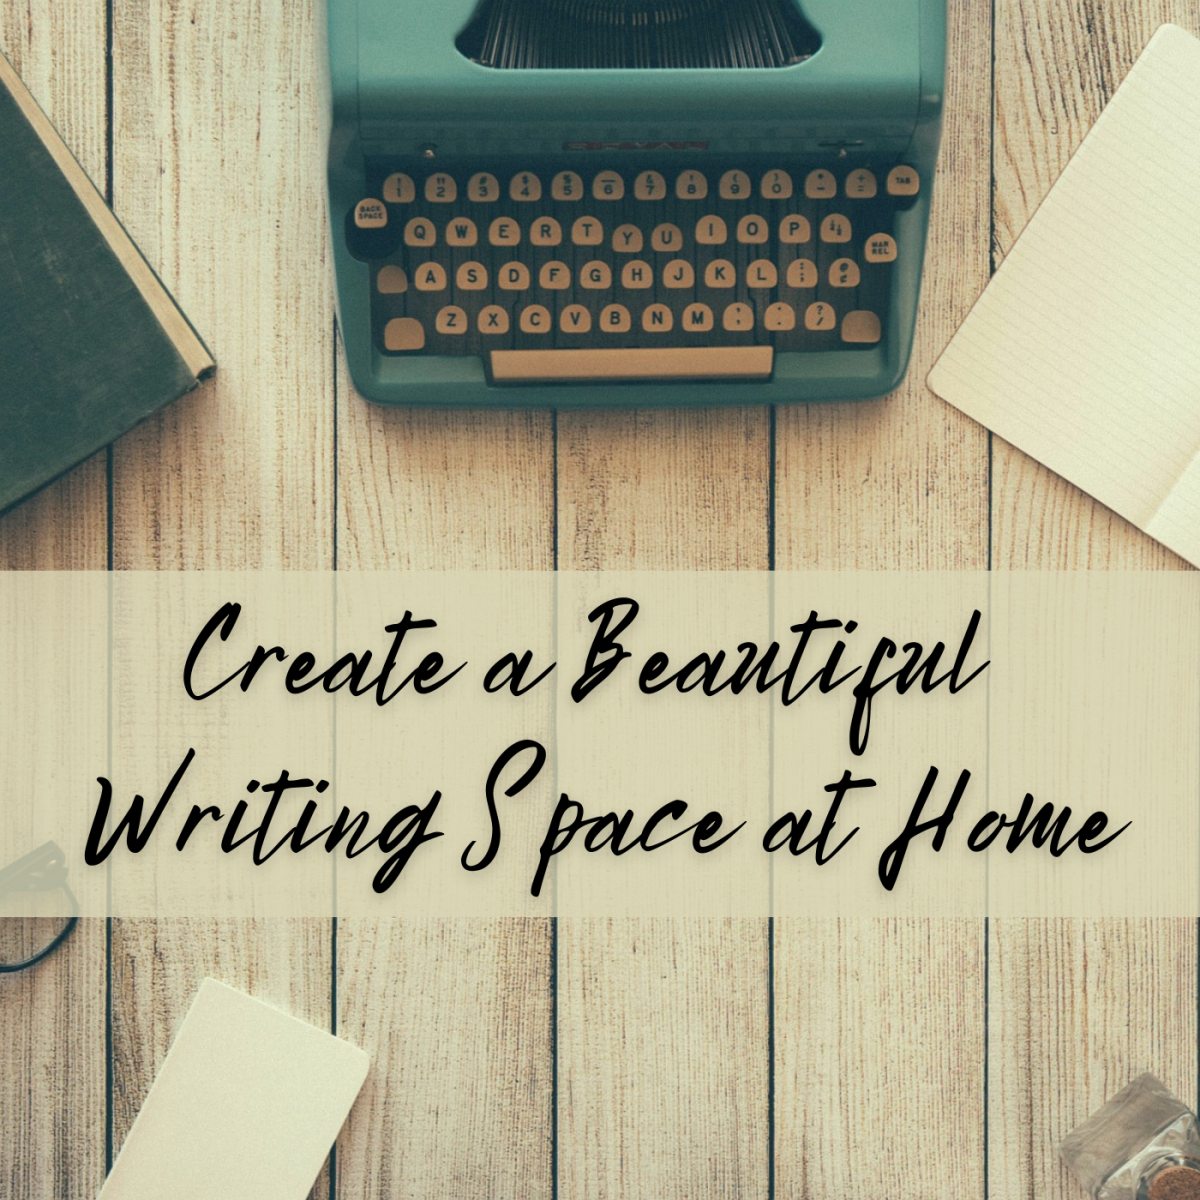 Create a cozy space at home to inspire writing.